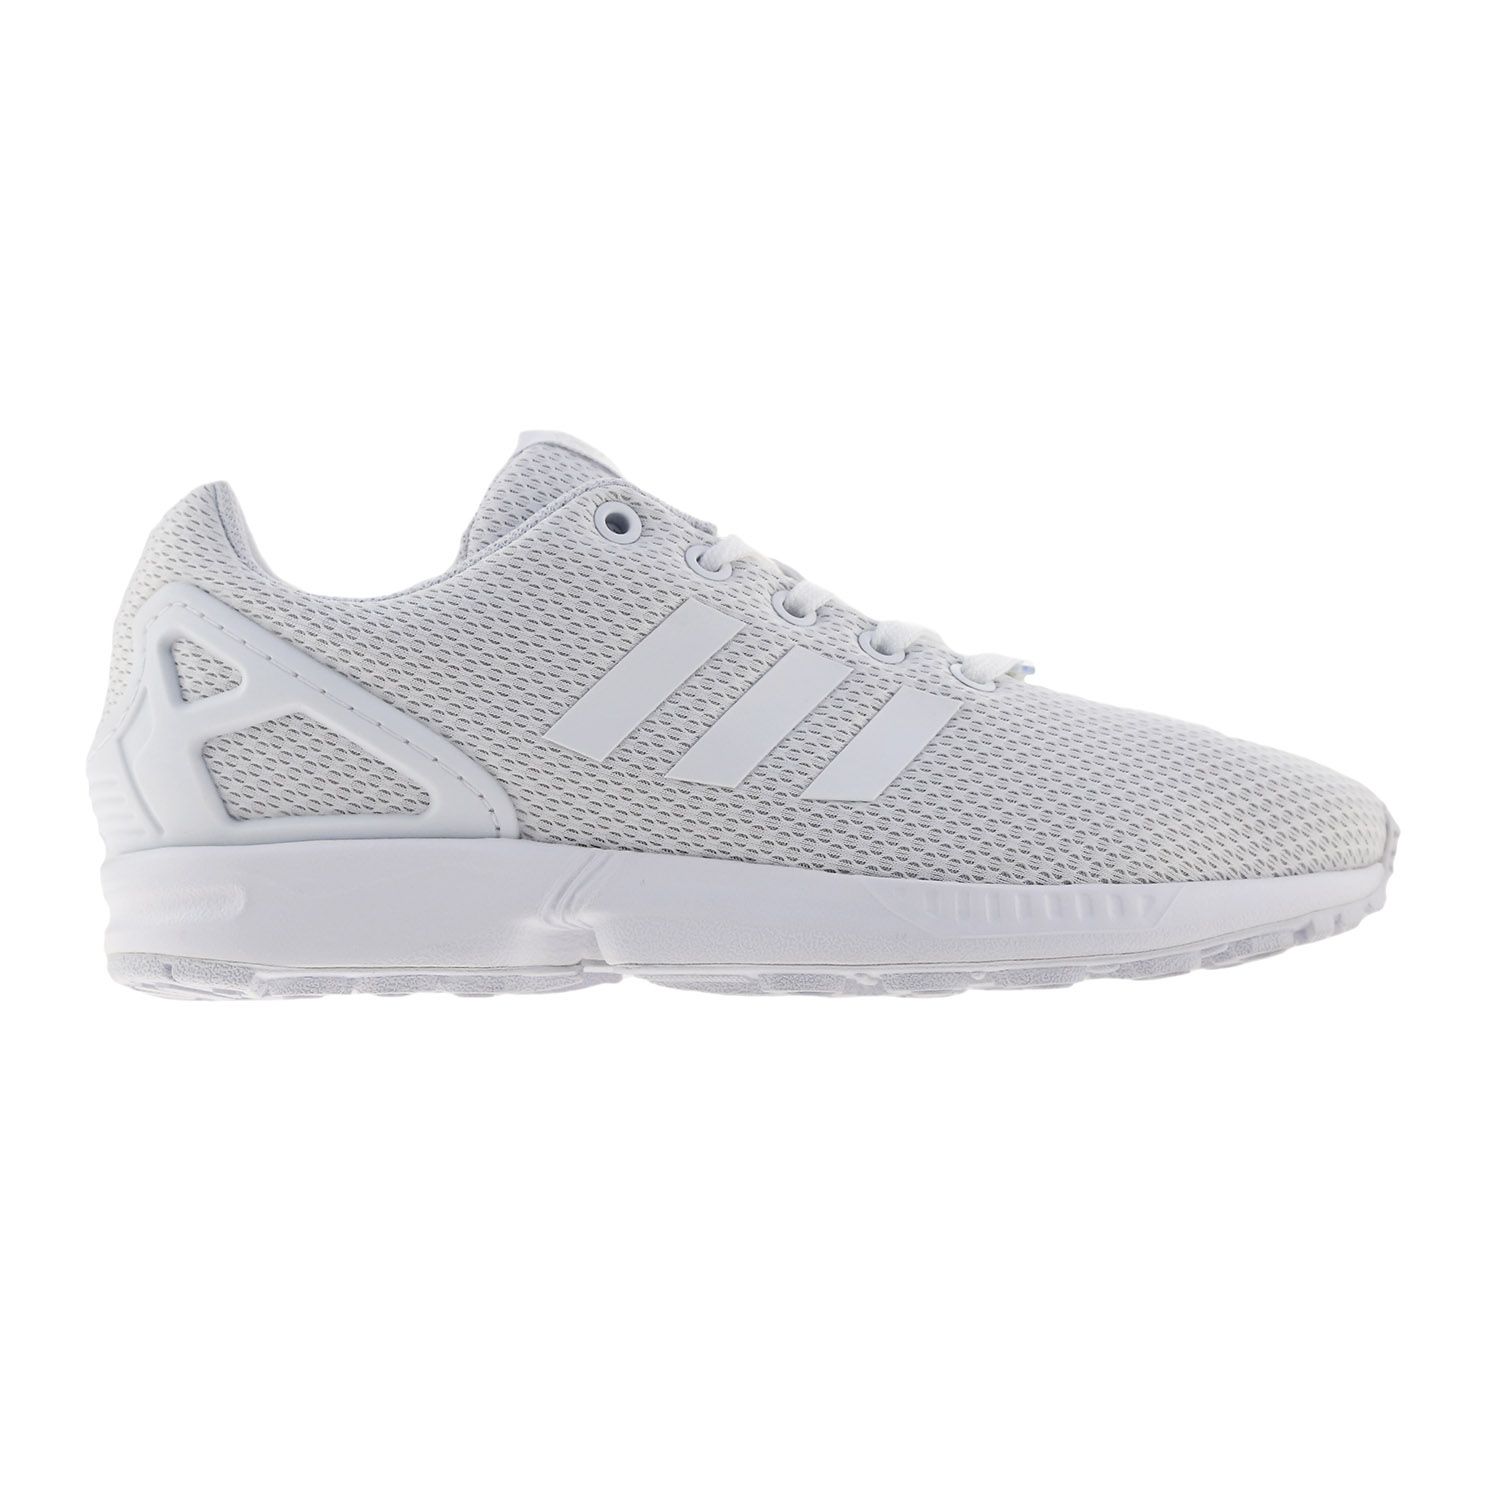 brand new c2468 6aa46 ... best-selling adidas… super popular 6340e 2b436 ... adidas Originals ZX  Flux GS ( S81421 )